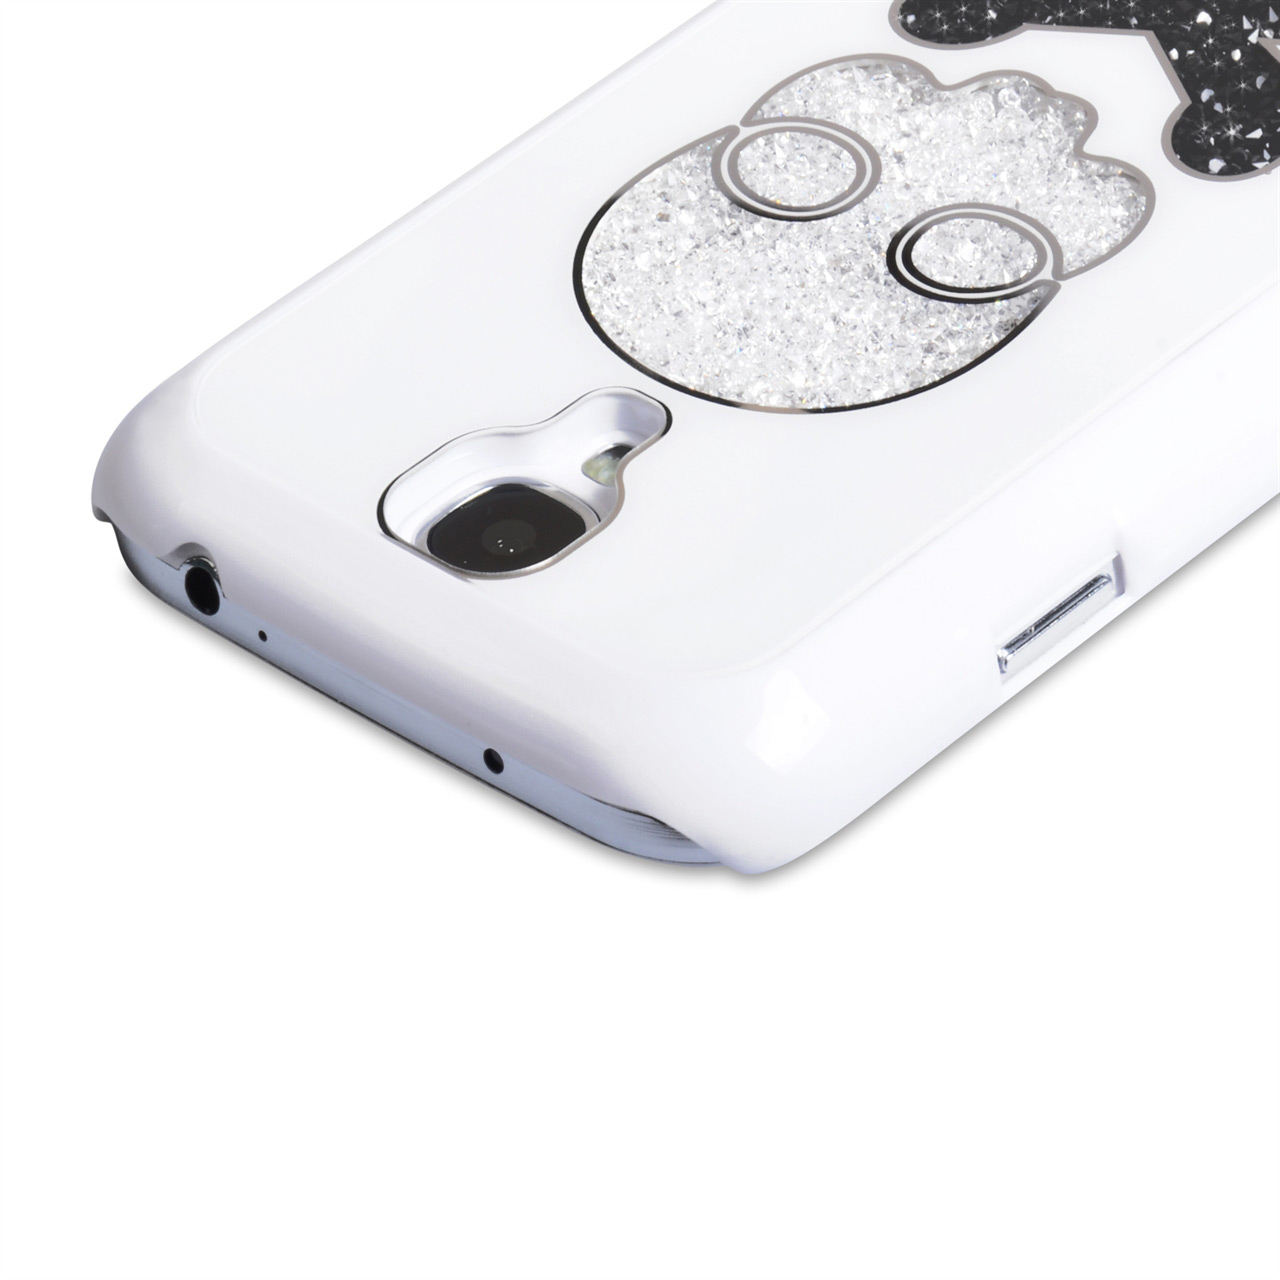 YouSave Accessories Samsung Galaxy S4 Skull Hard Case - White